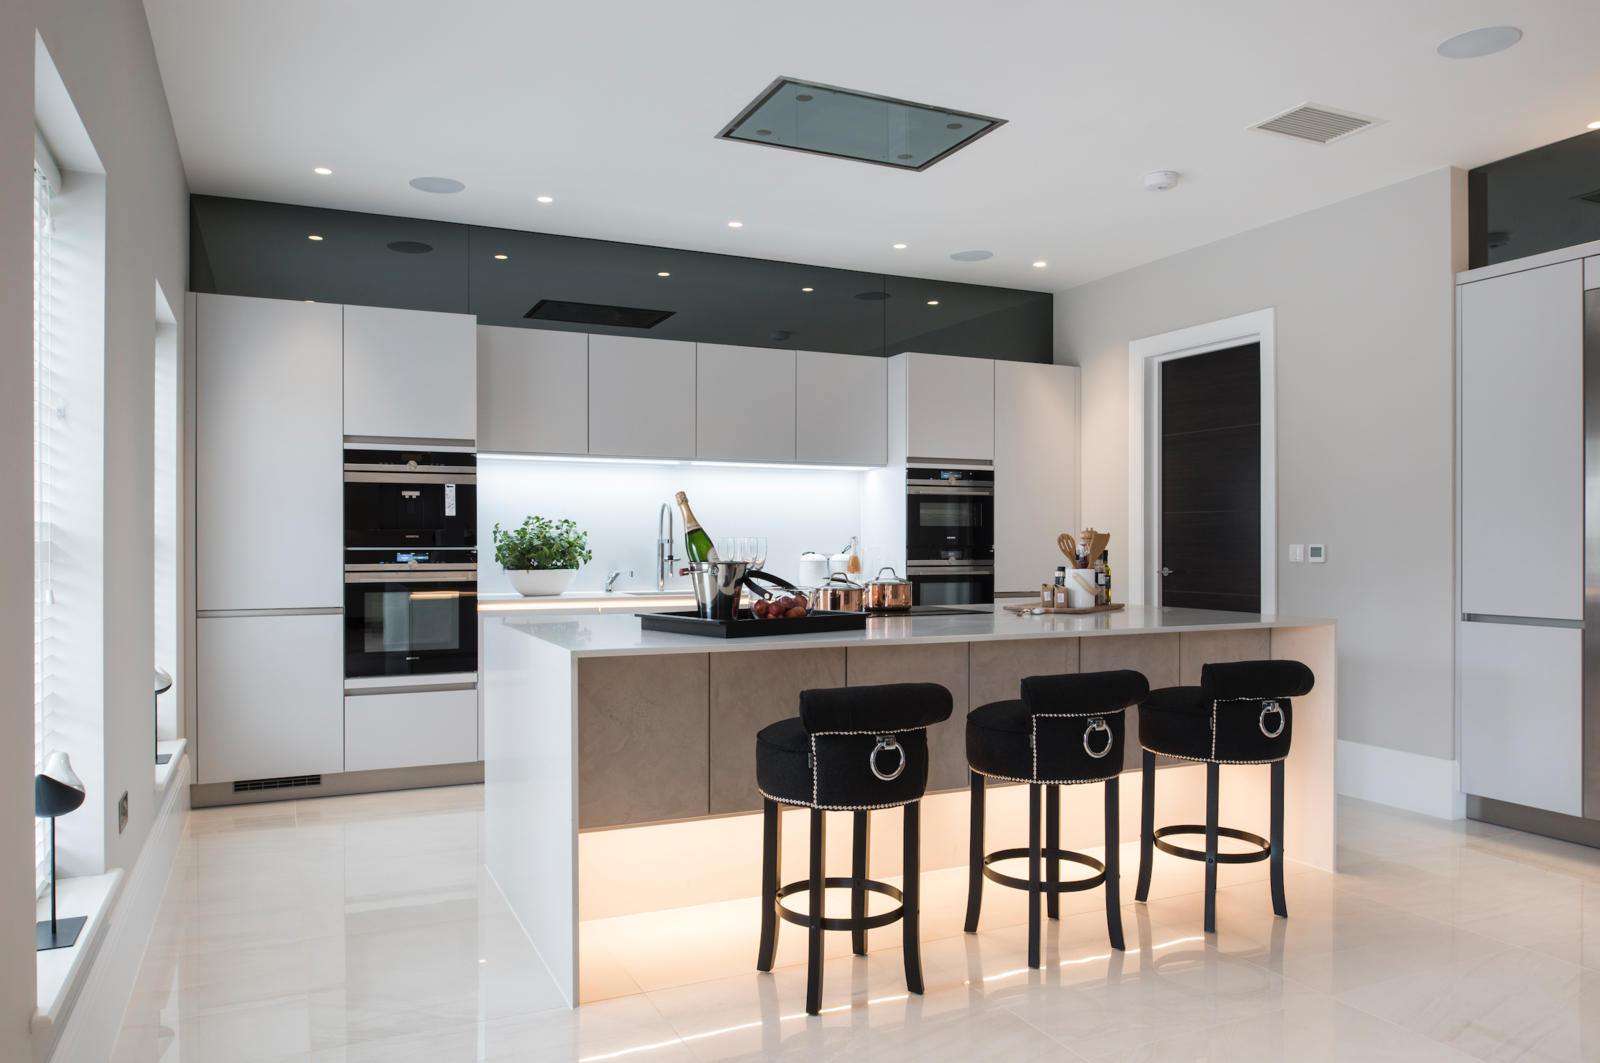 luxury kitchen interior london marek sikora images